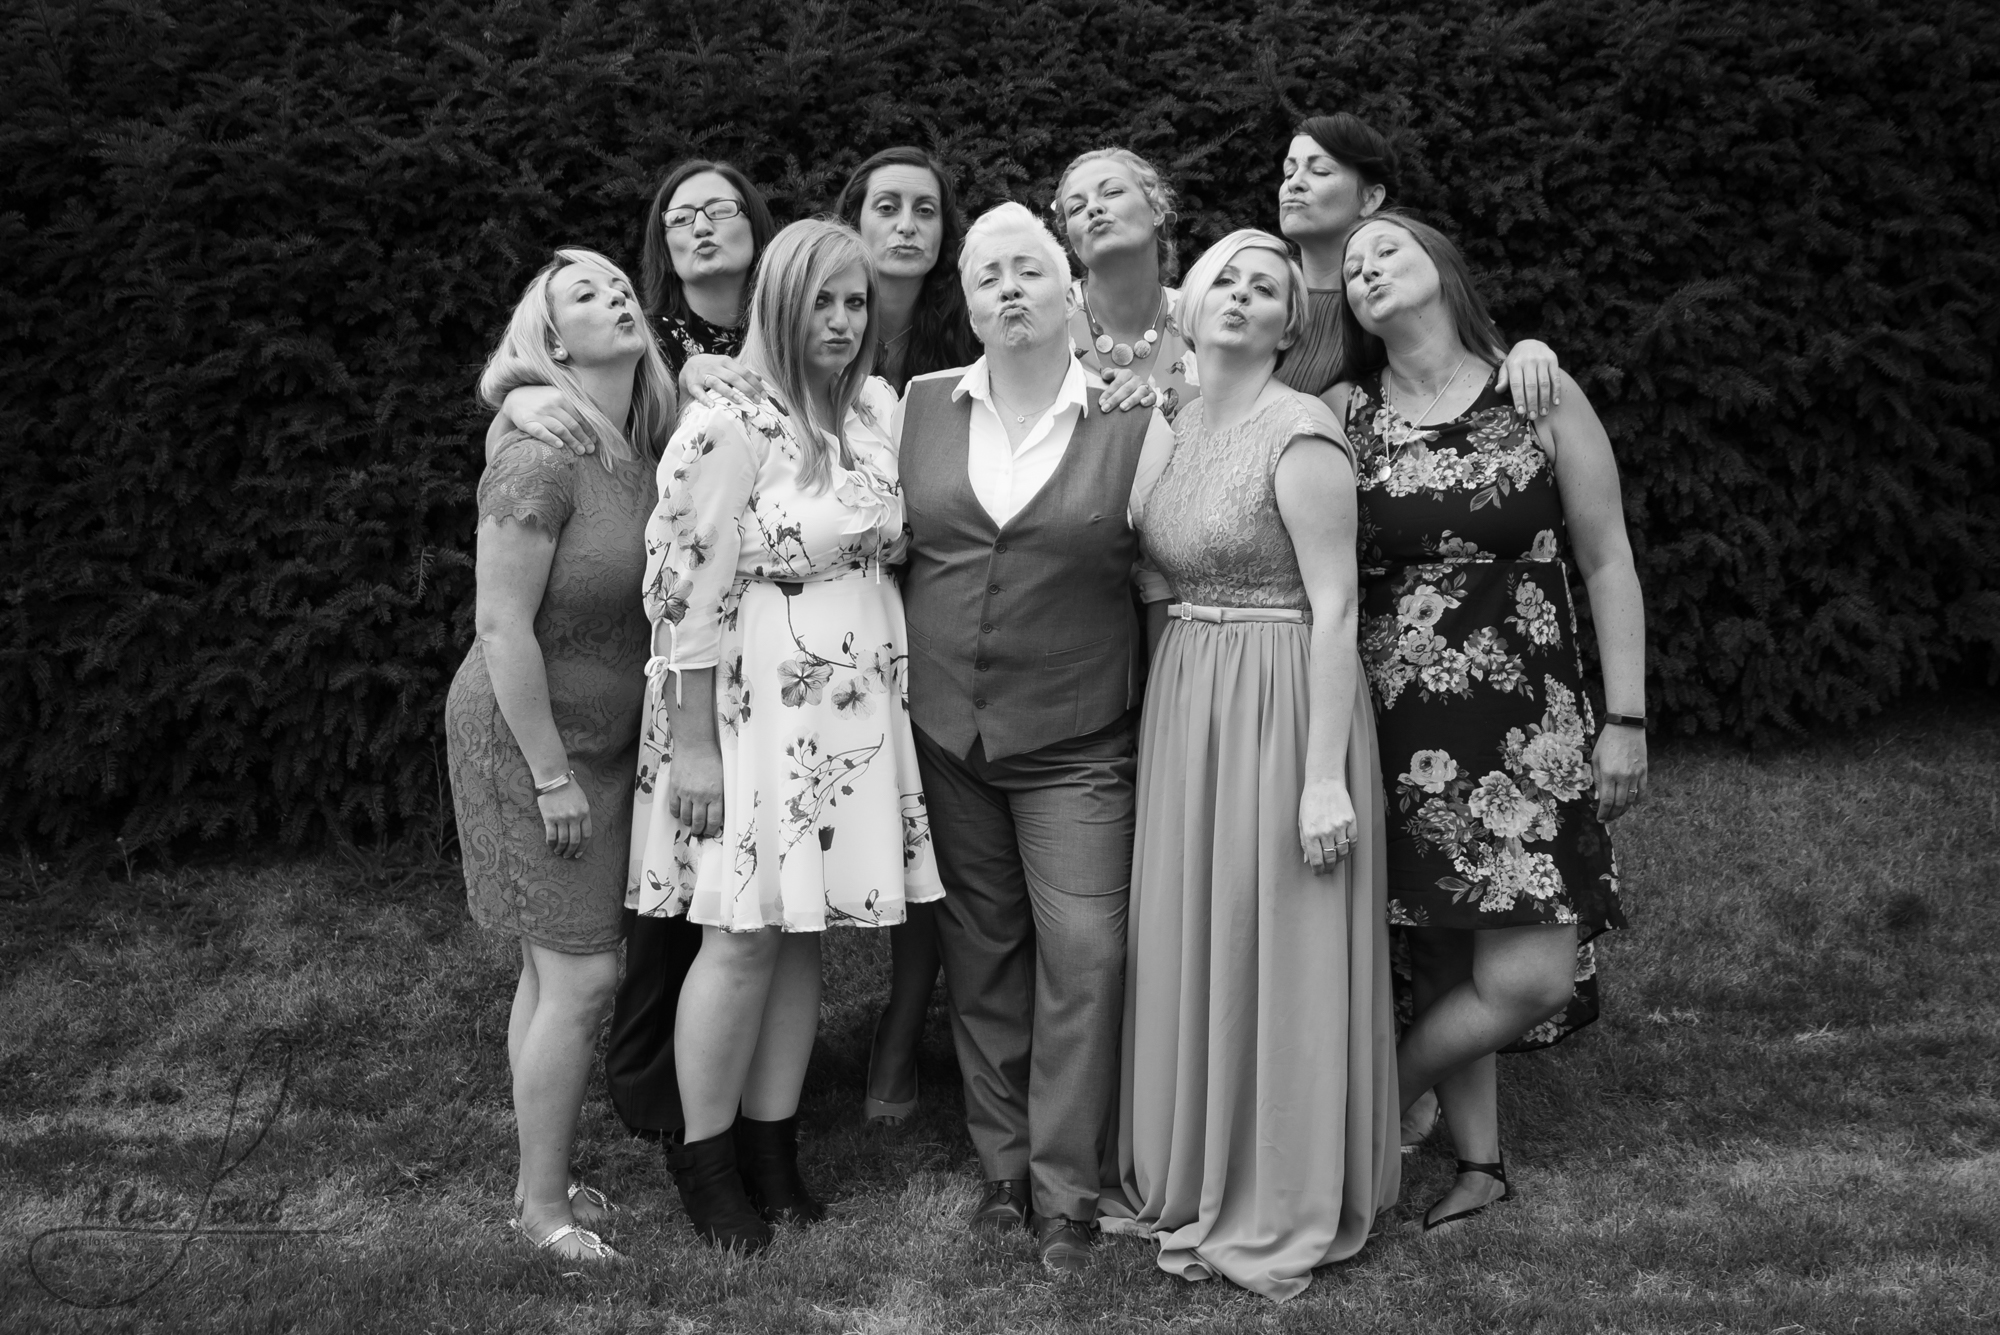 some of the brides family gather outside for a late night family group photograph